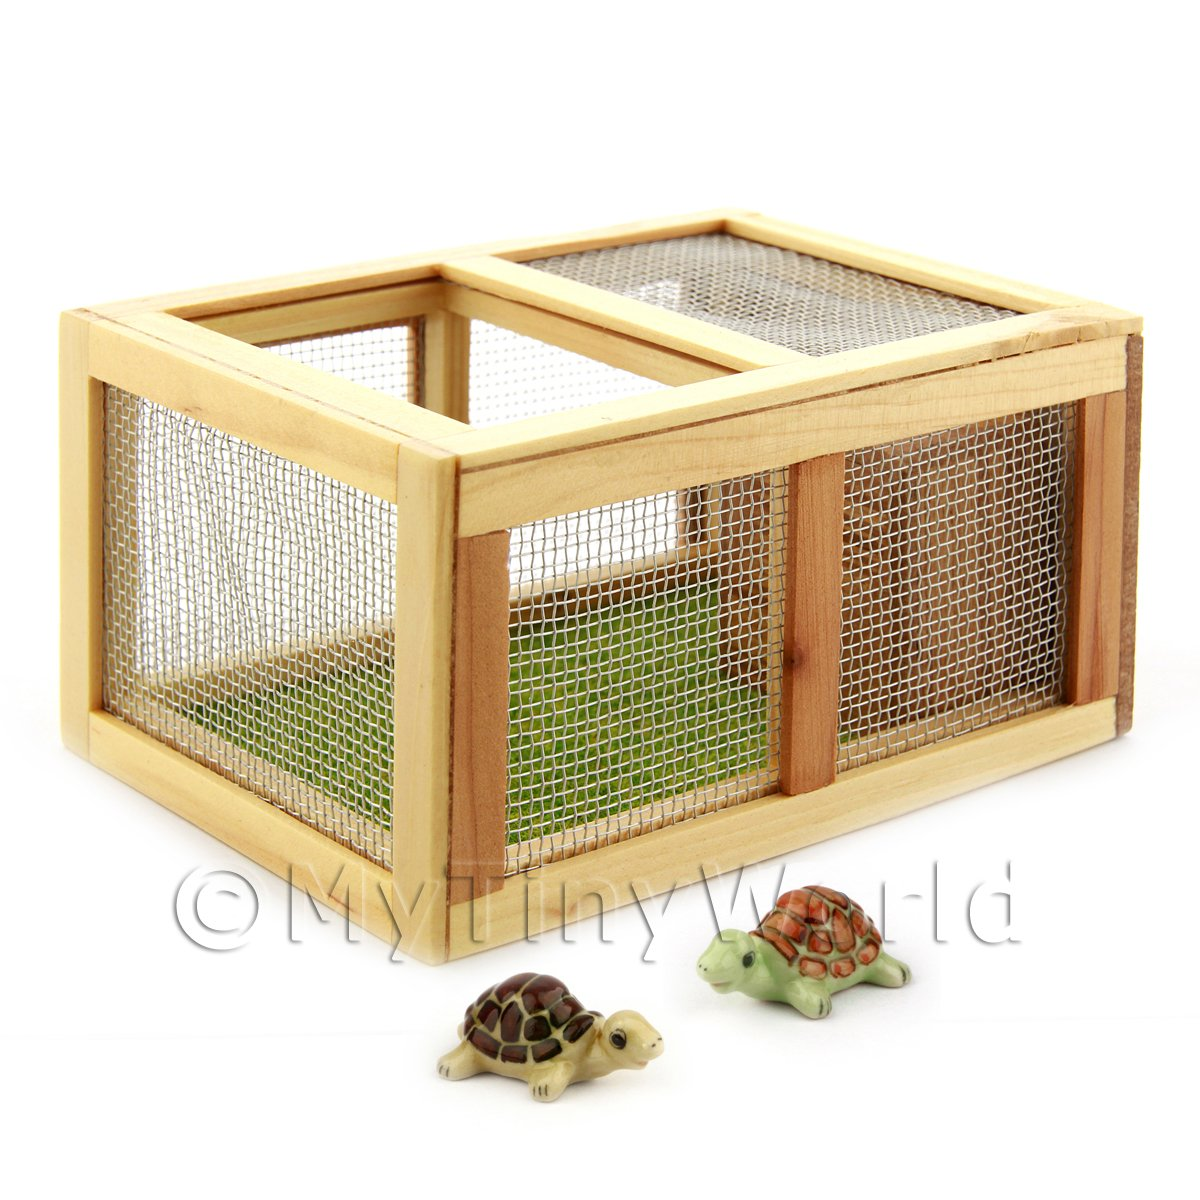 Dolls House Miniature Wooden Animal Hutch And 2 Tortoises